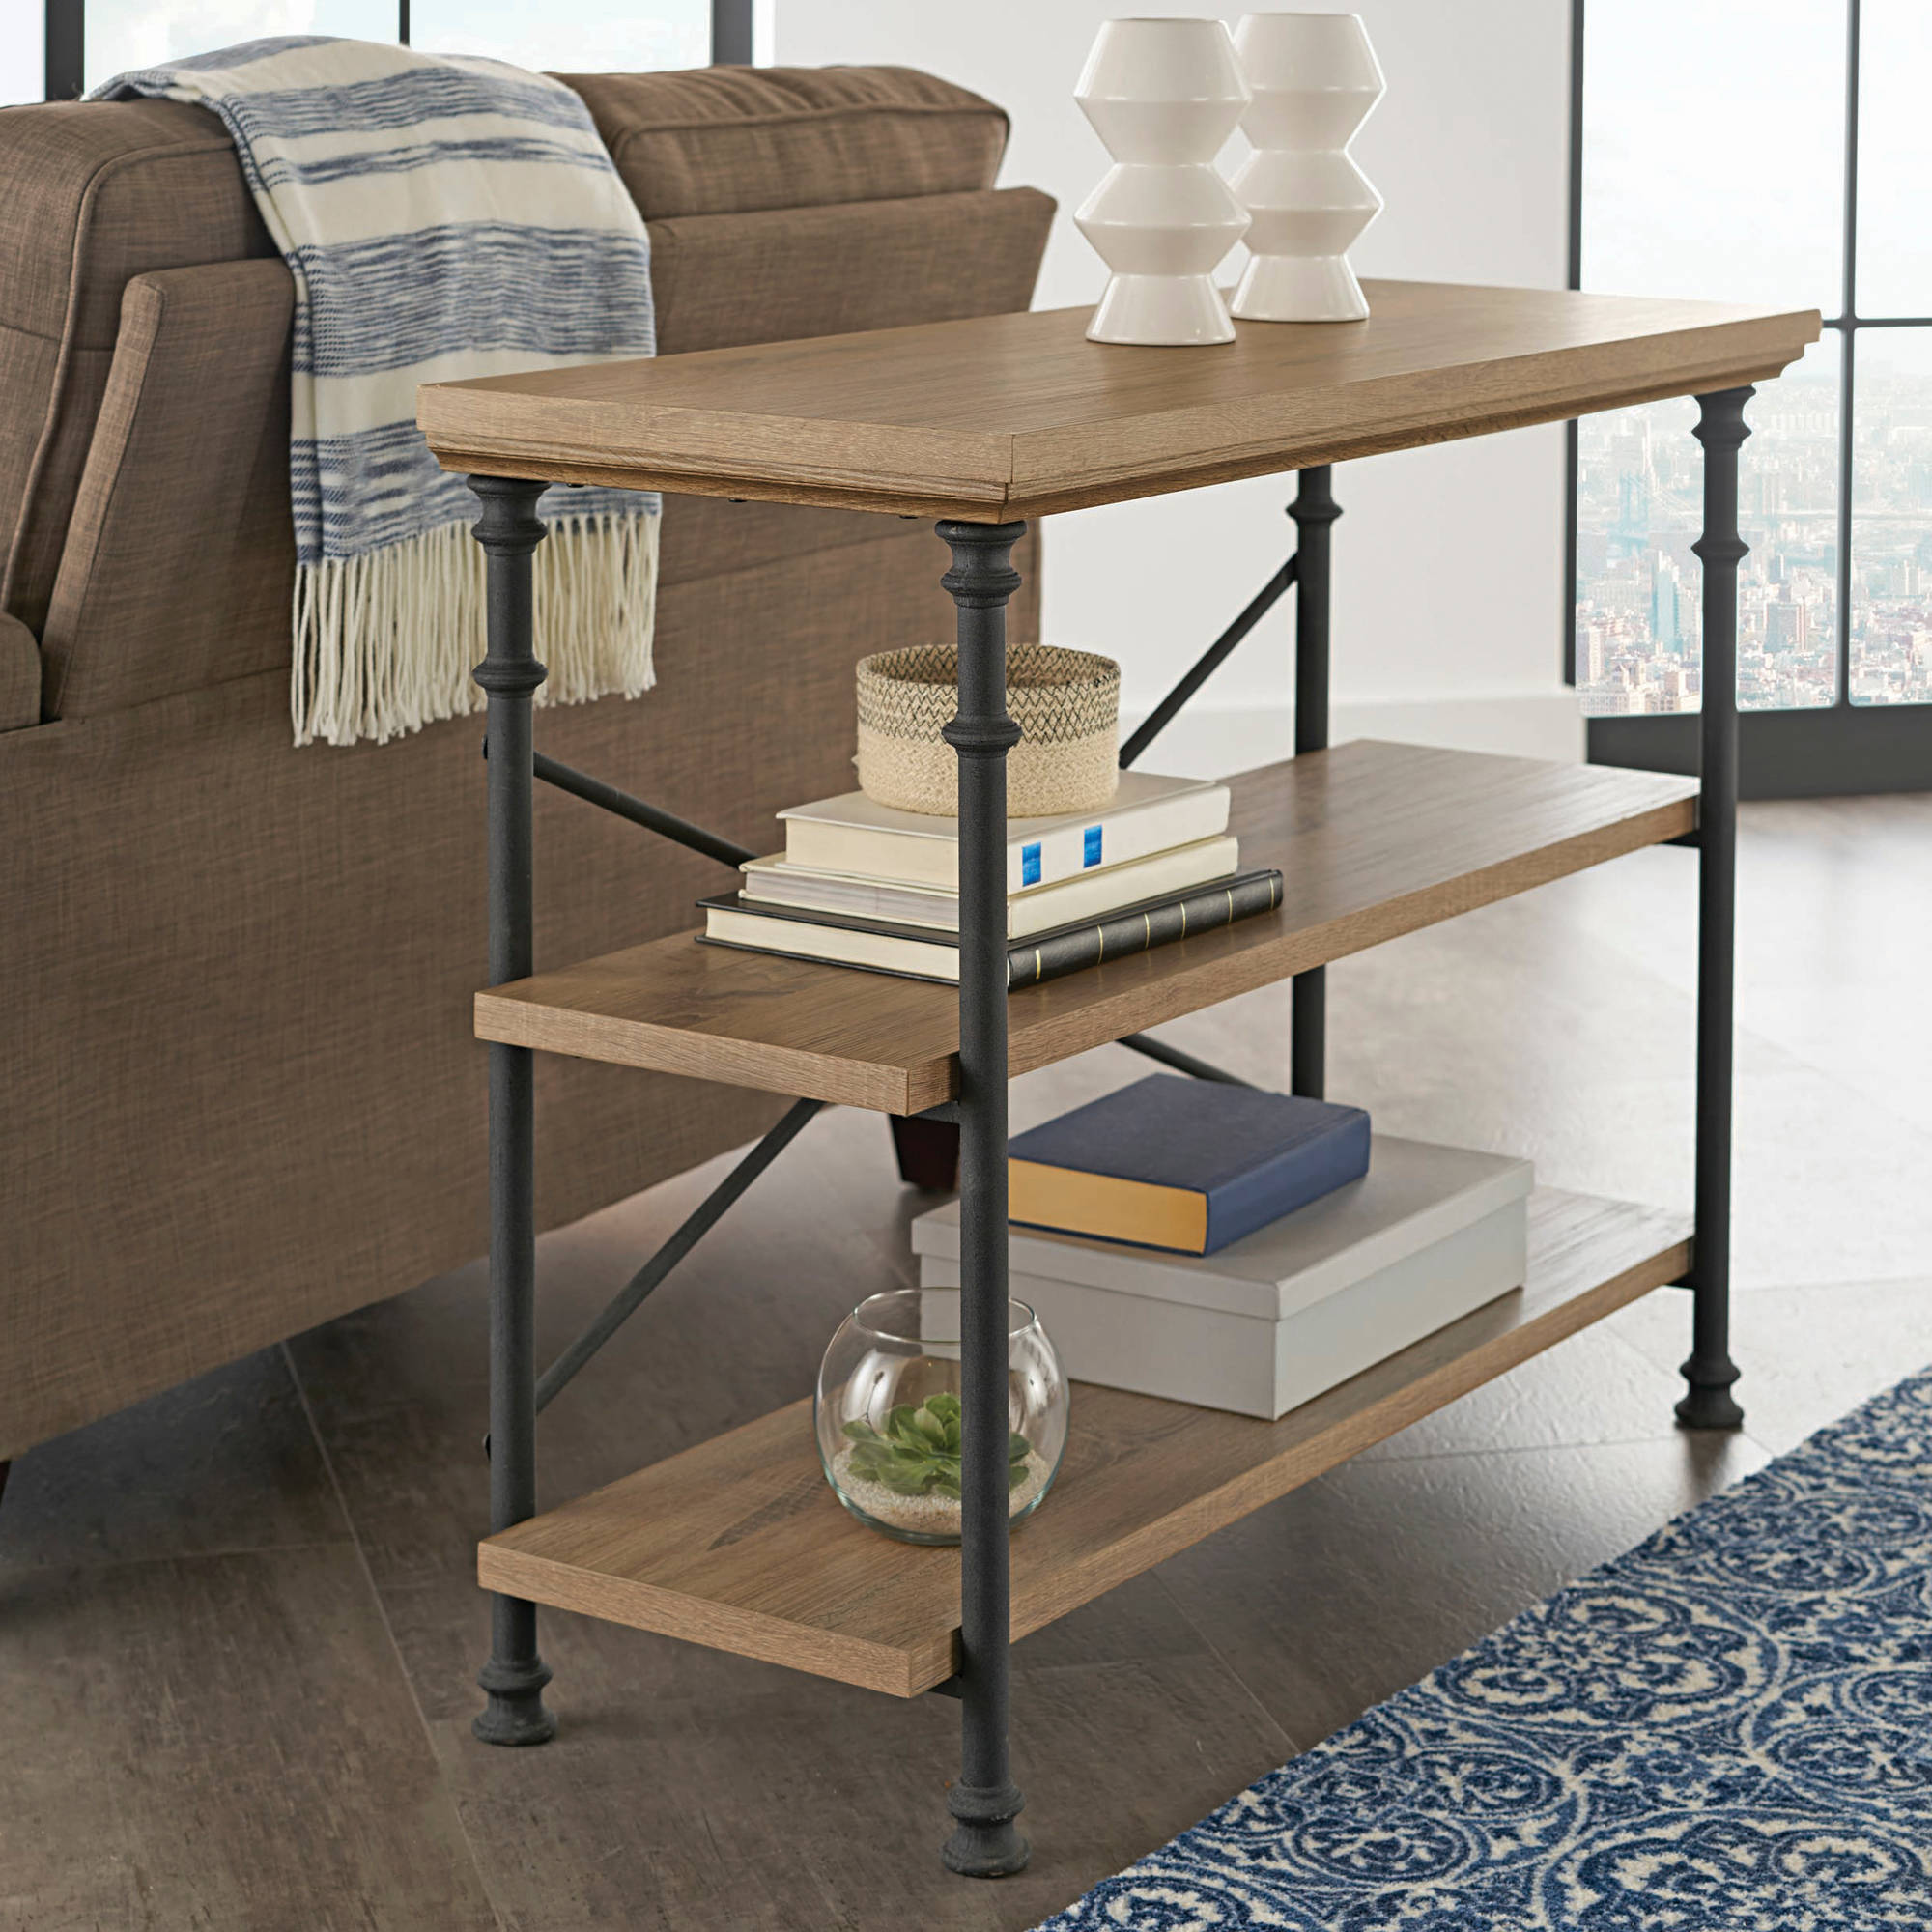 "Better Homes & Gardens River Crest Anywhere Console for TVs up to 42"", Rustic Oak Finish"